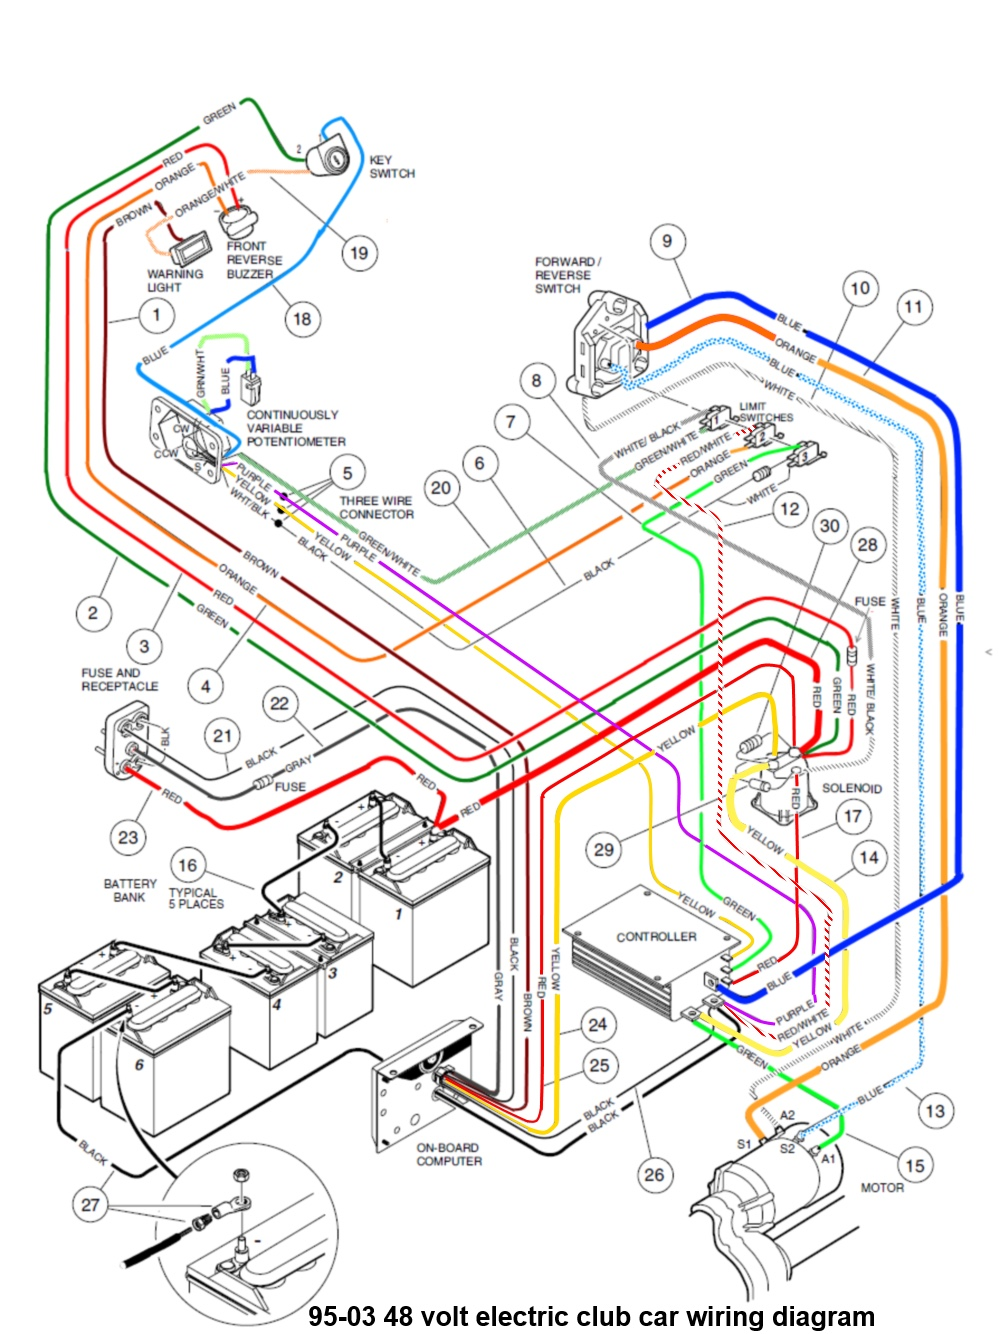 club car wiring diagram 48 volt dc receptacle club car top speed doesn't seem right - page 2 club car wiring diagram 48 volt